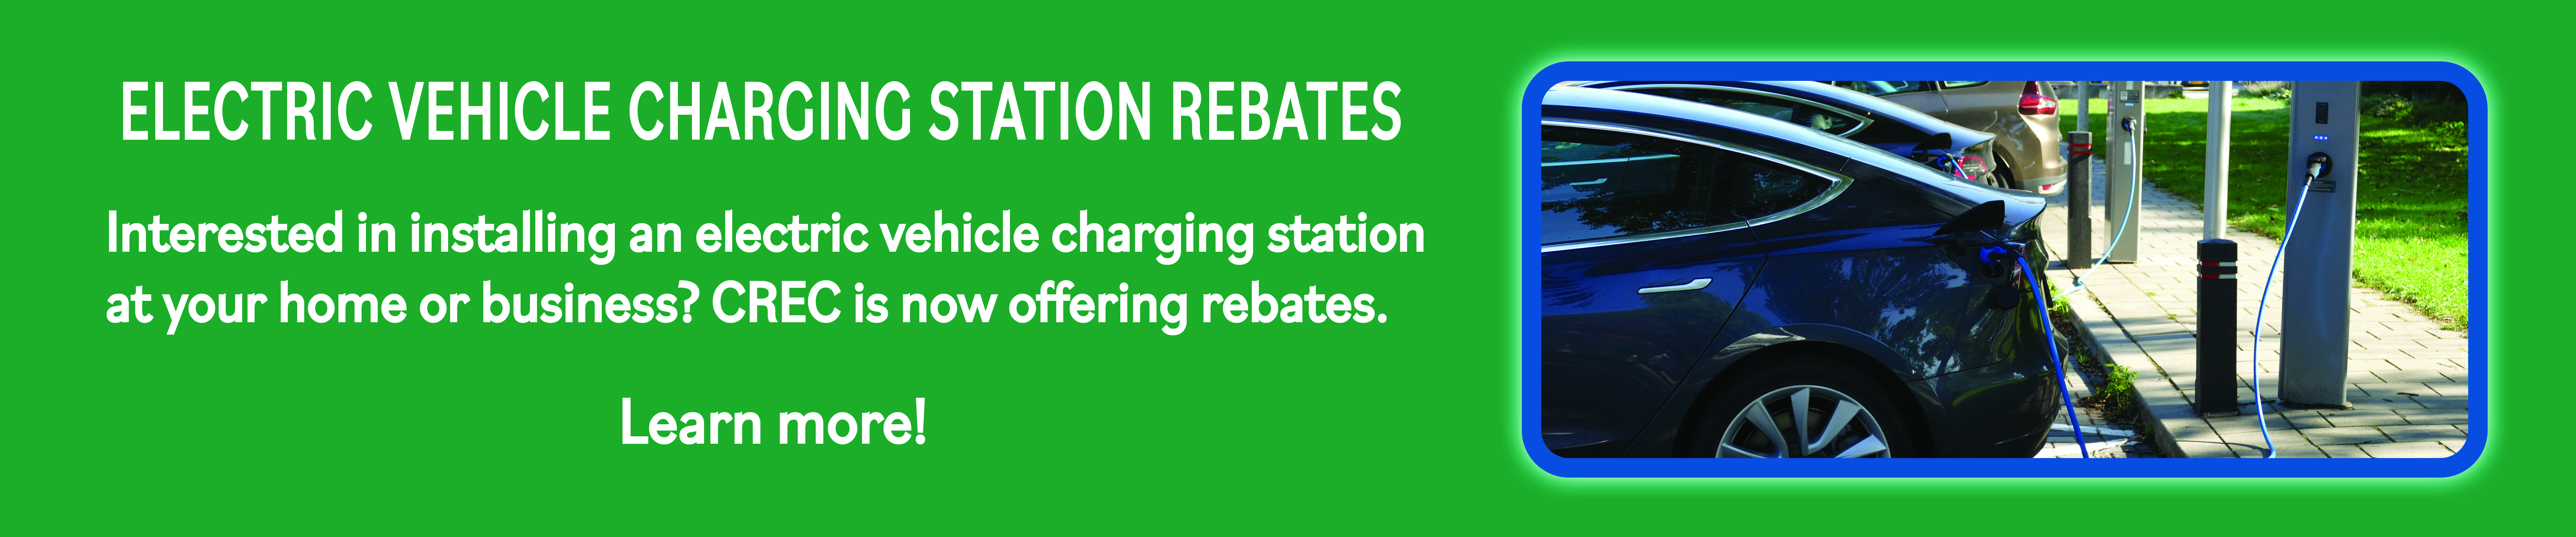 Electric Vehicle Charging Station Rebates